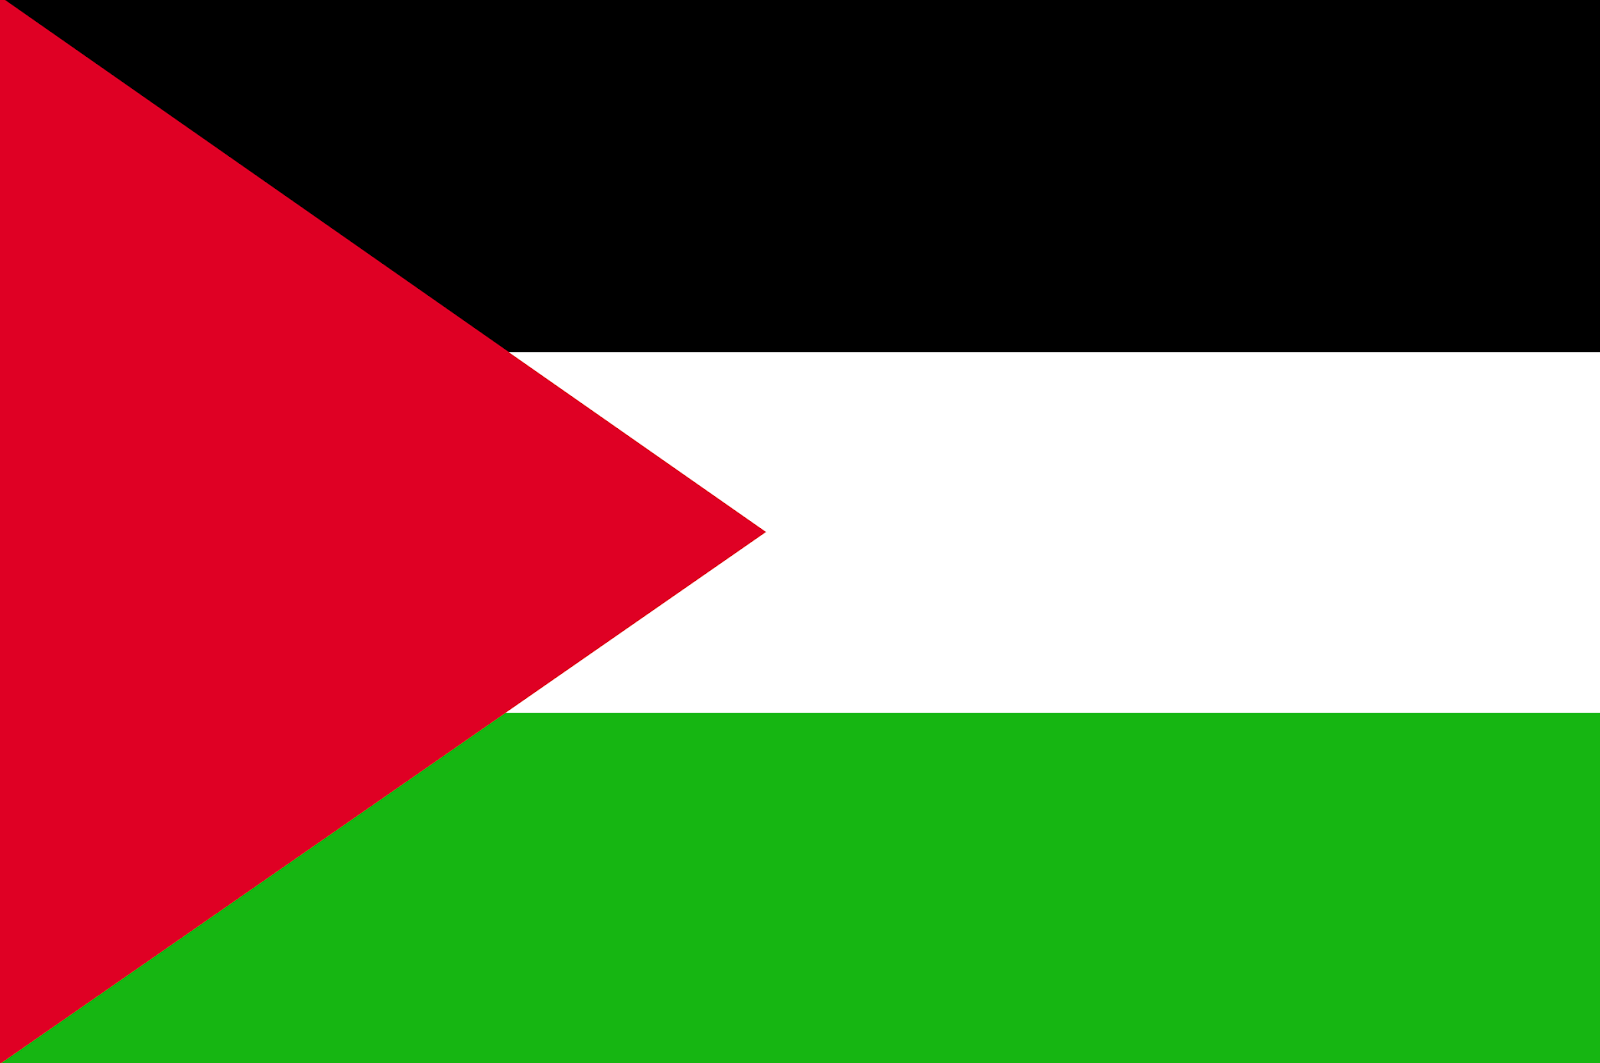 Clipart Png Palestine Flag Collection image #38256